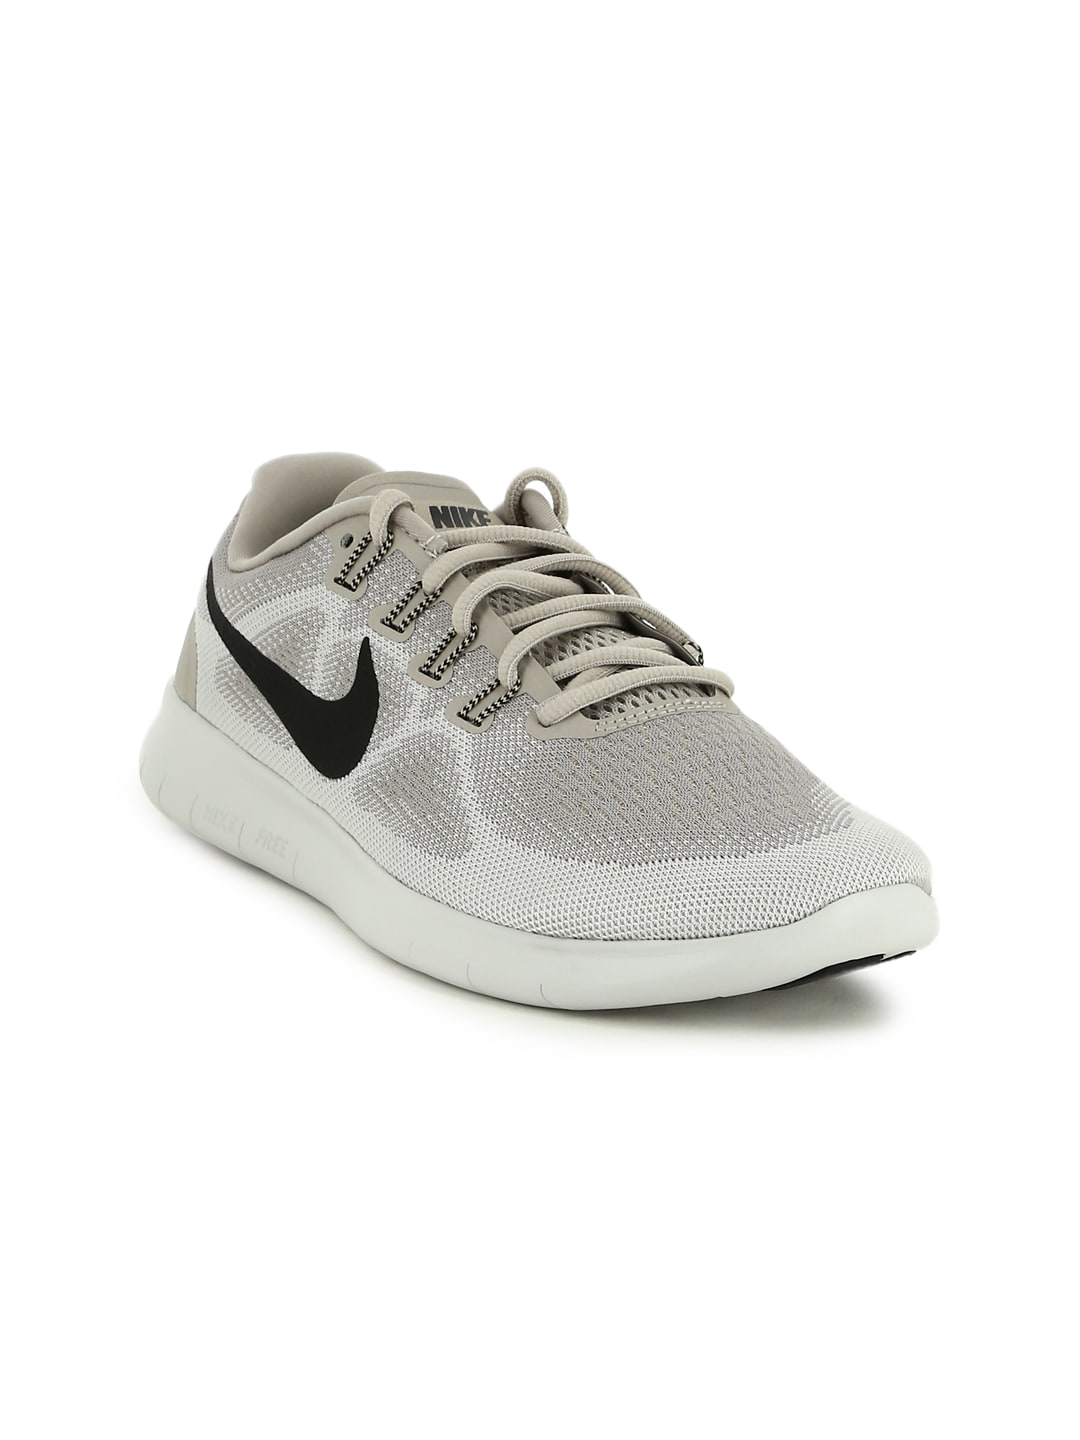 Shoes Myntra Buy Running Online Nike zZx5gpw